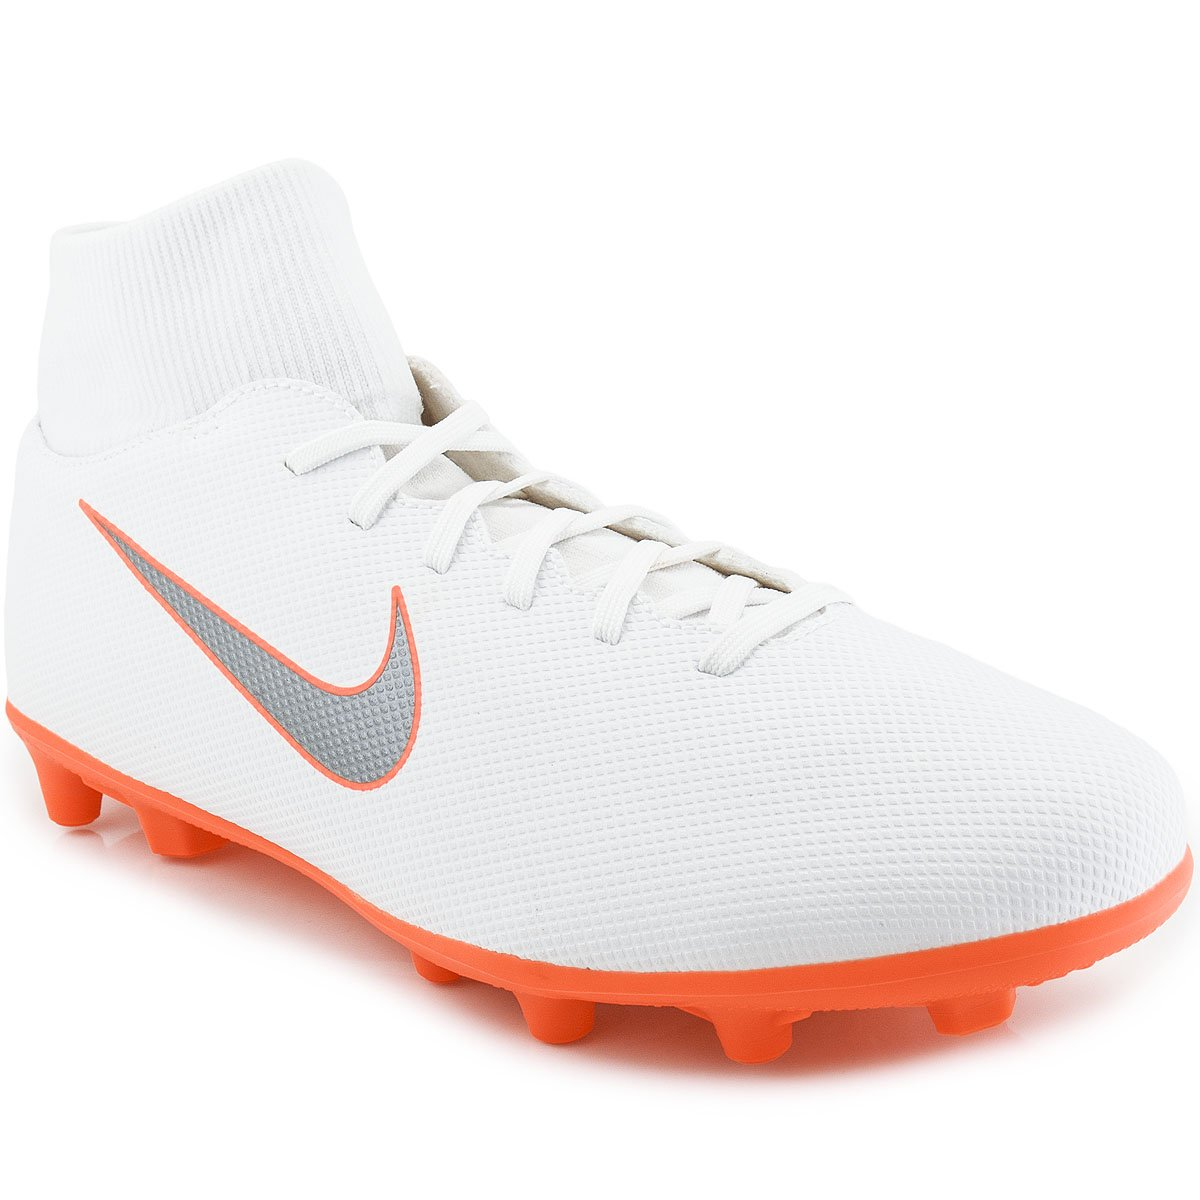 6183ac2357 ... Chuteira Nike Mercurial Superfly 6 Club MG AH7363 good 409fe 911b2 . ...